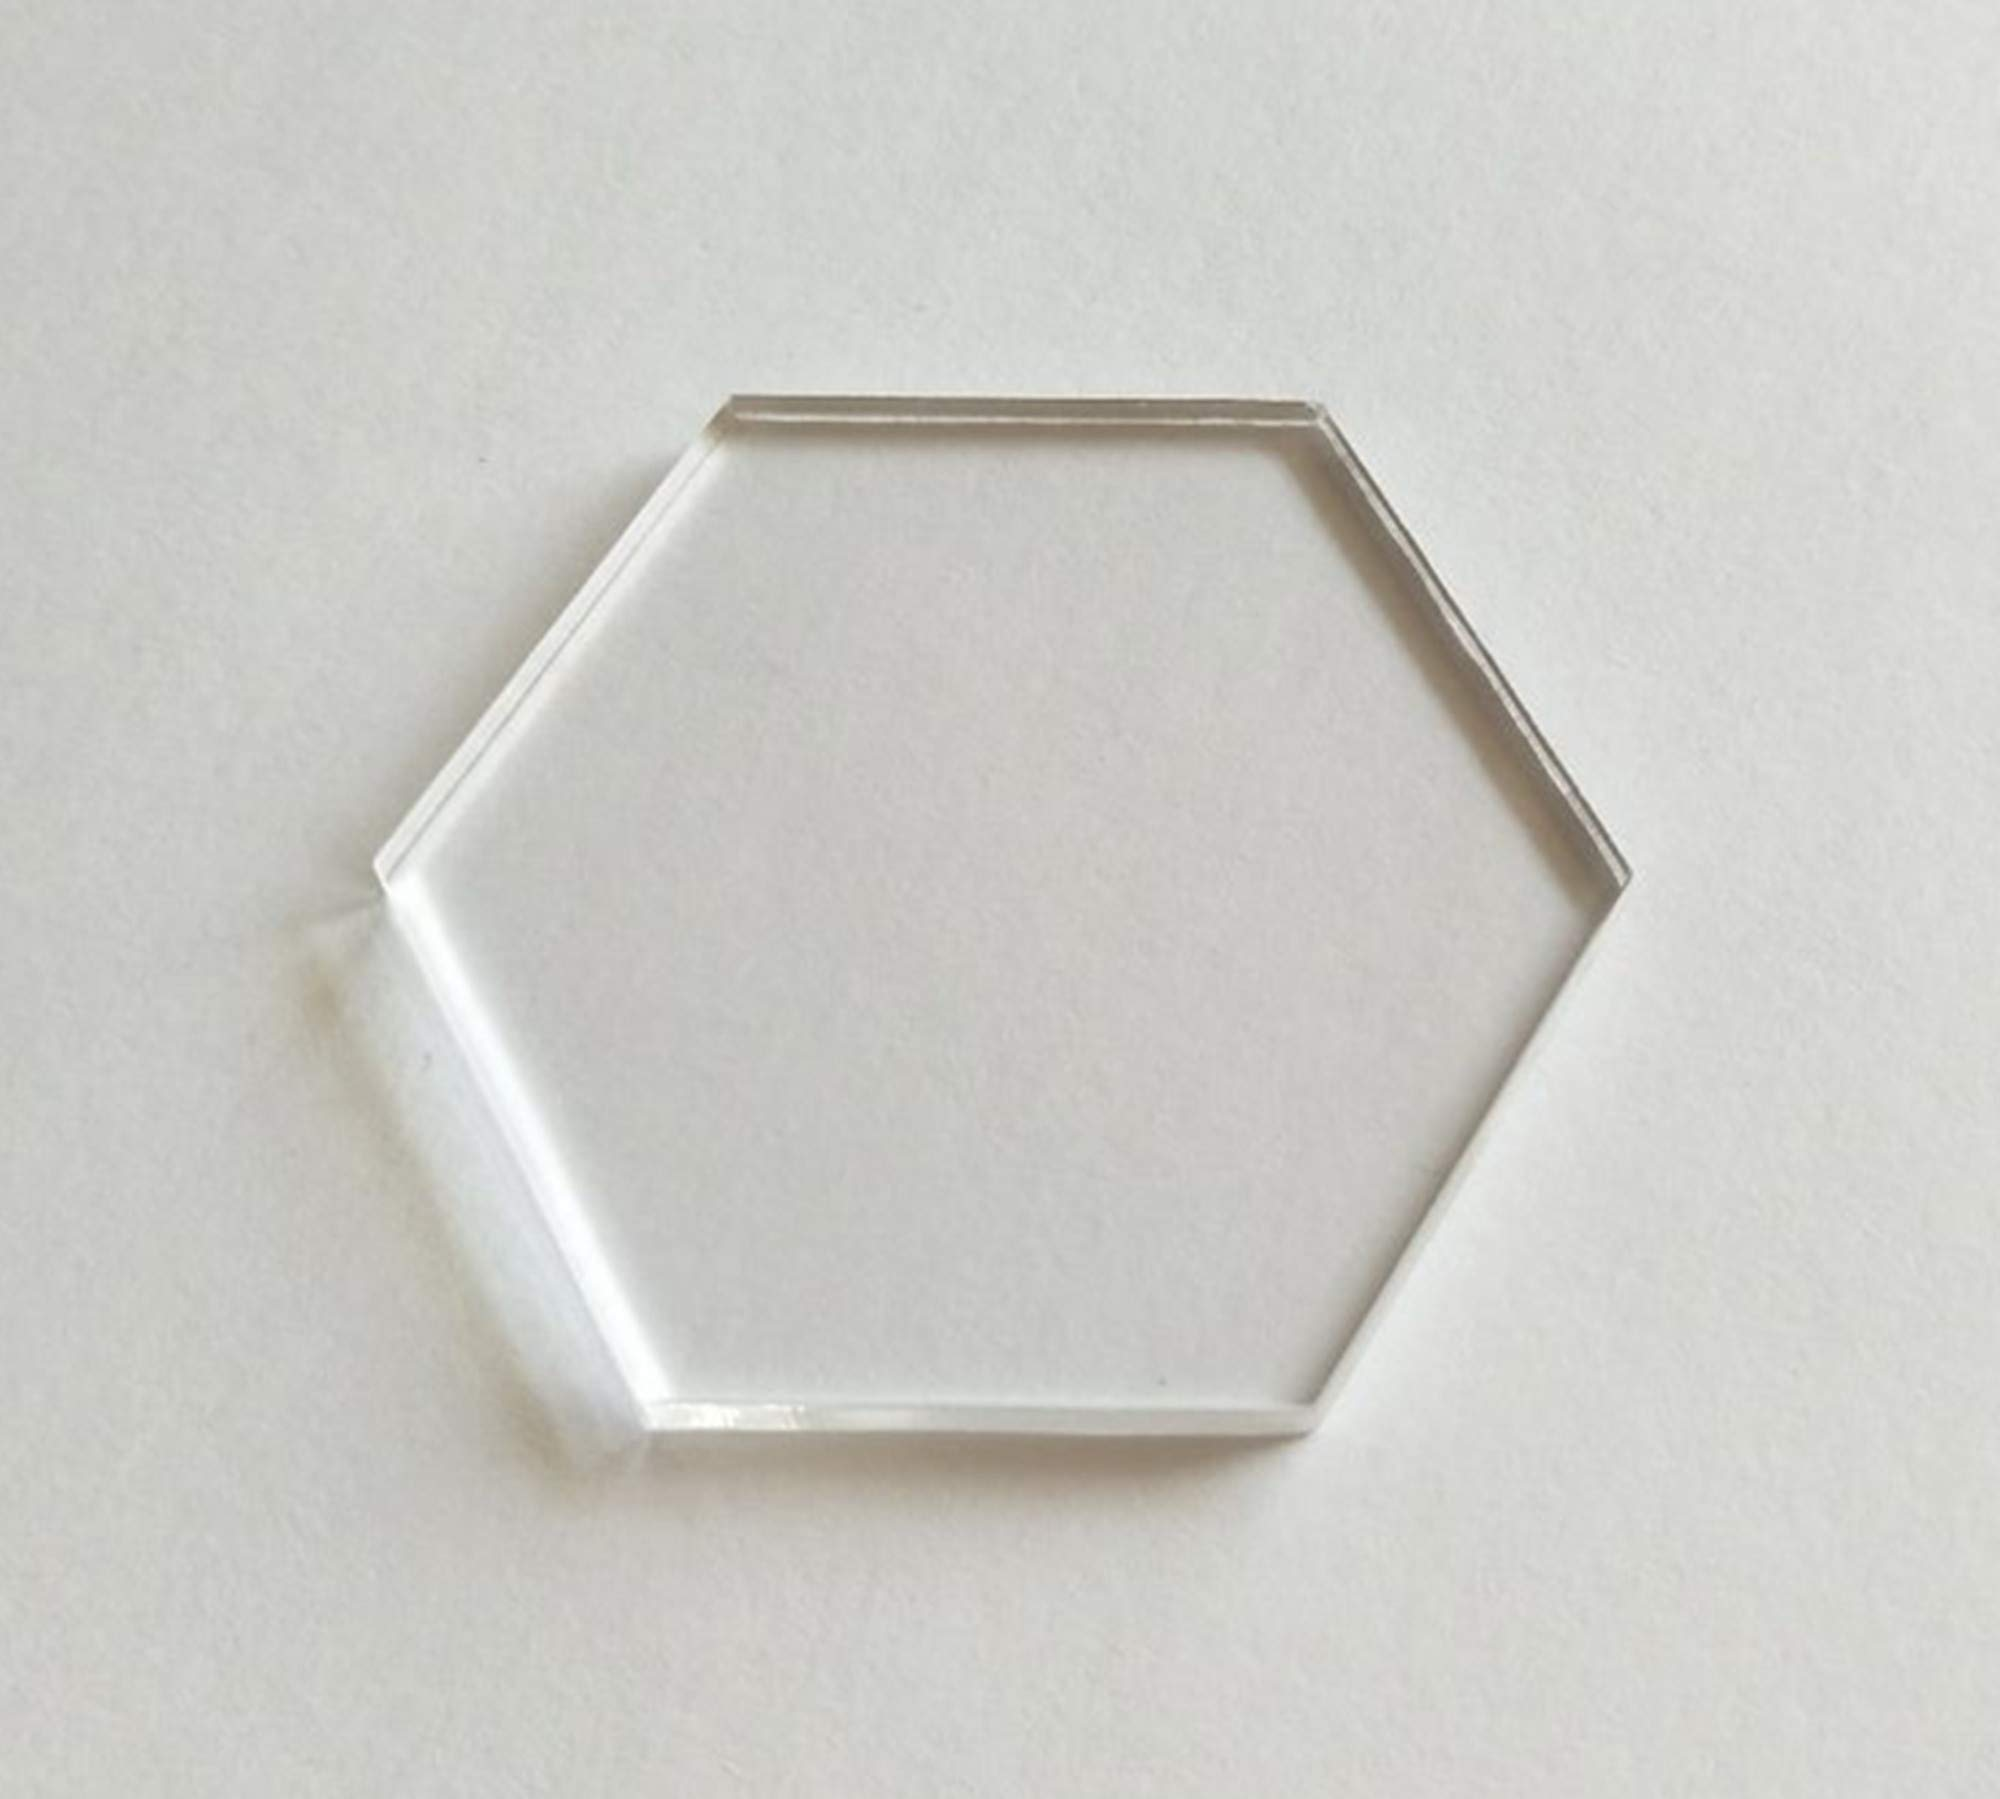 YongPan 20PCS Acrylic Blanks Hexagon Clear Tag, Acrylic Coaster Hexagon Place Card Names Wedding Signs for Wedding, DIY Crafts Making and Home Decoration (Clear, 4'') by YongPan